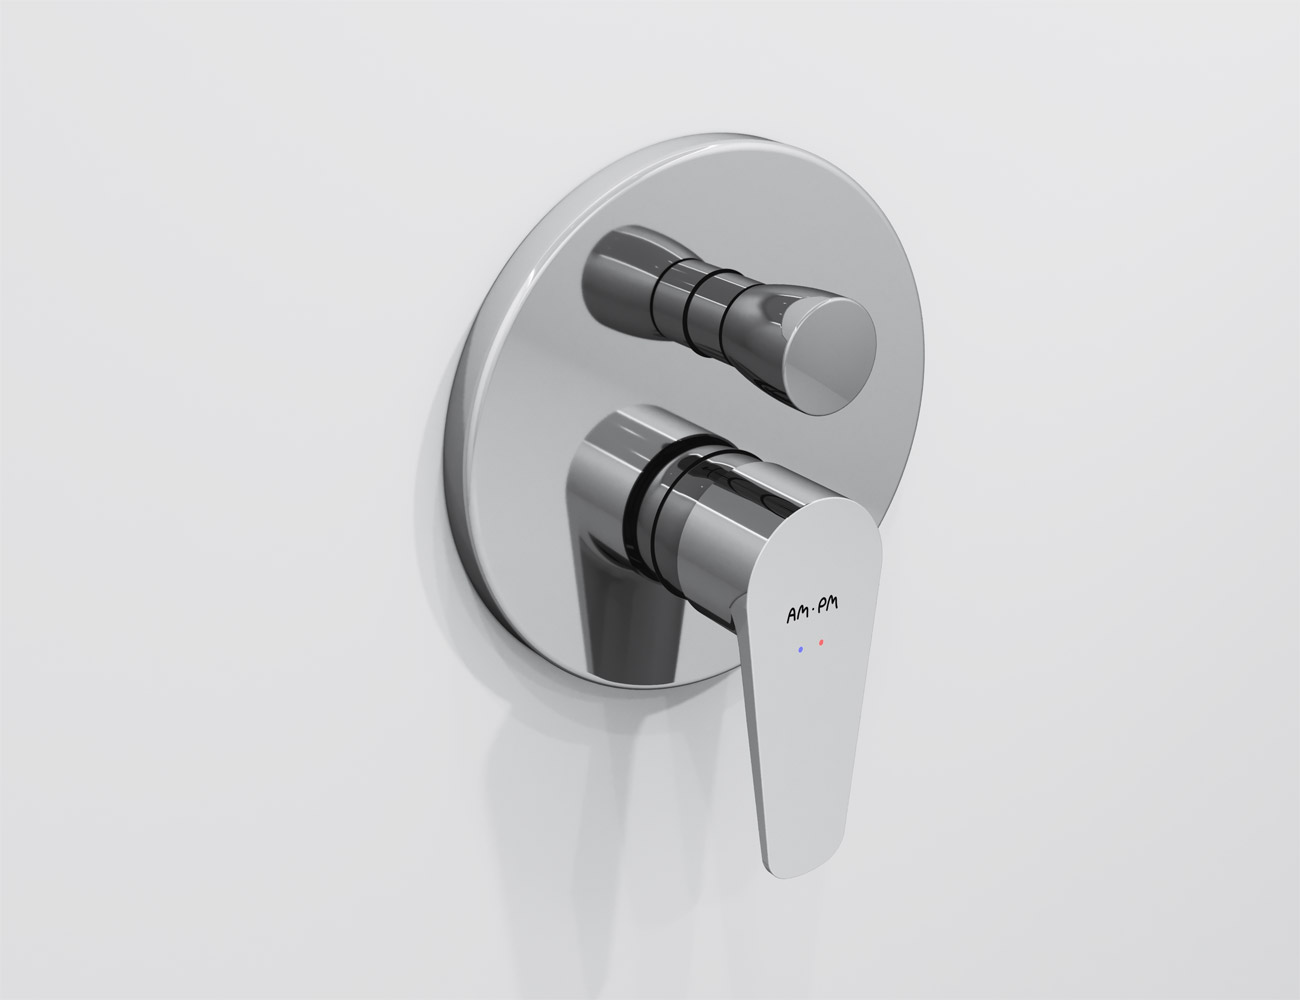 F5085000 Single-lever bath and shower mixer for concealed installation